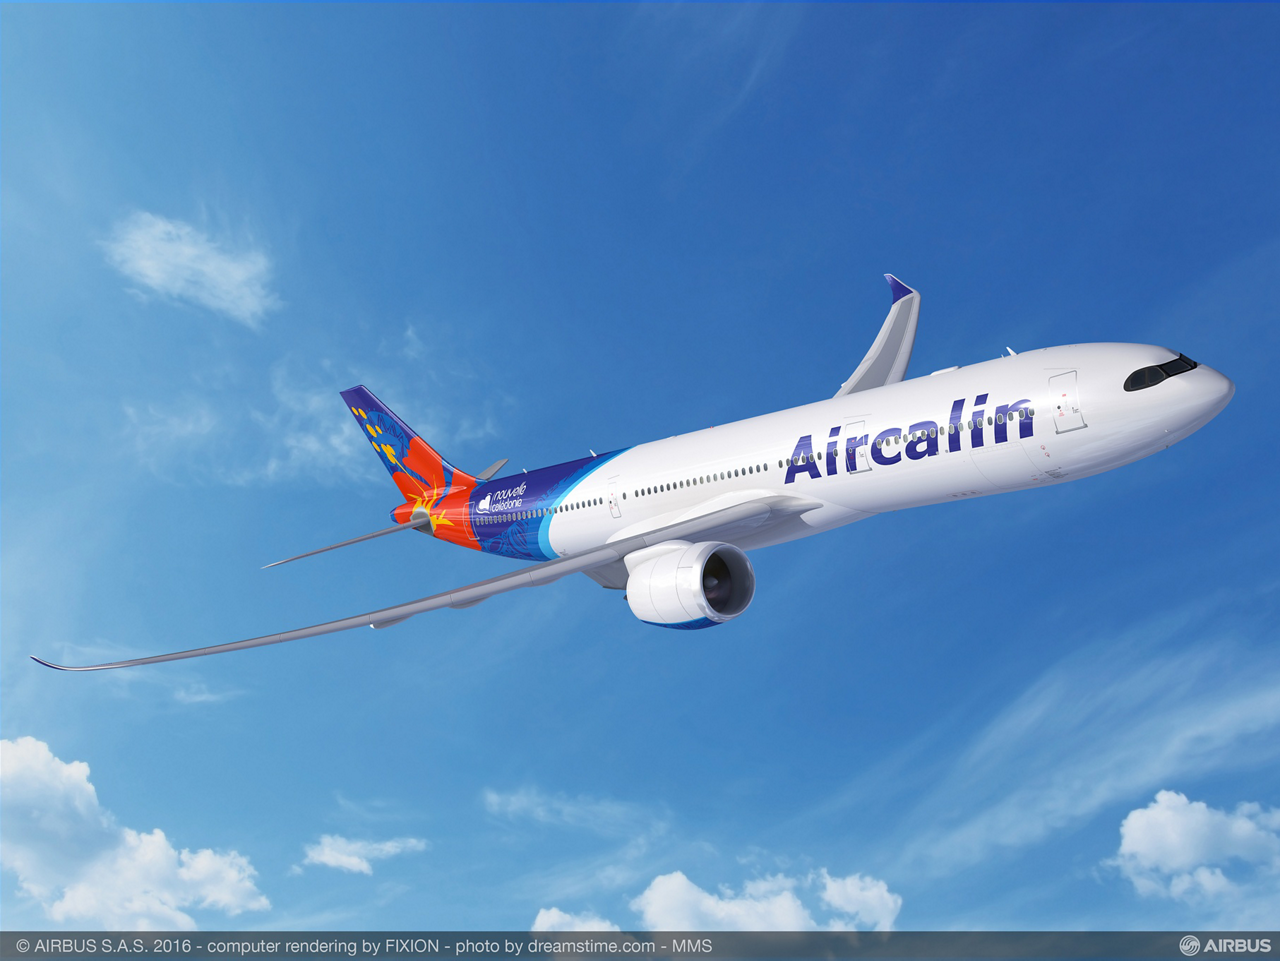 """Aircalin CEO Didier Tappero: """"Aircalin has made a strategic decision to renew its complete fleet with the A320neo and the A330neo to grow routes and connect New Caledonia to the region"""""""